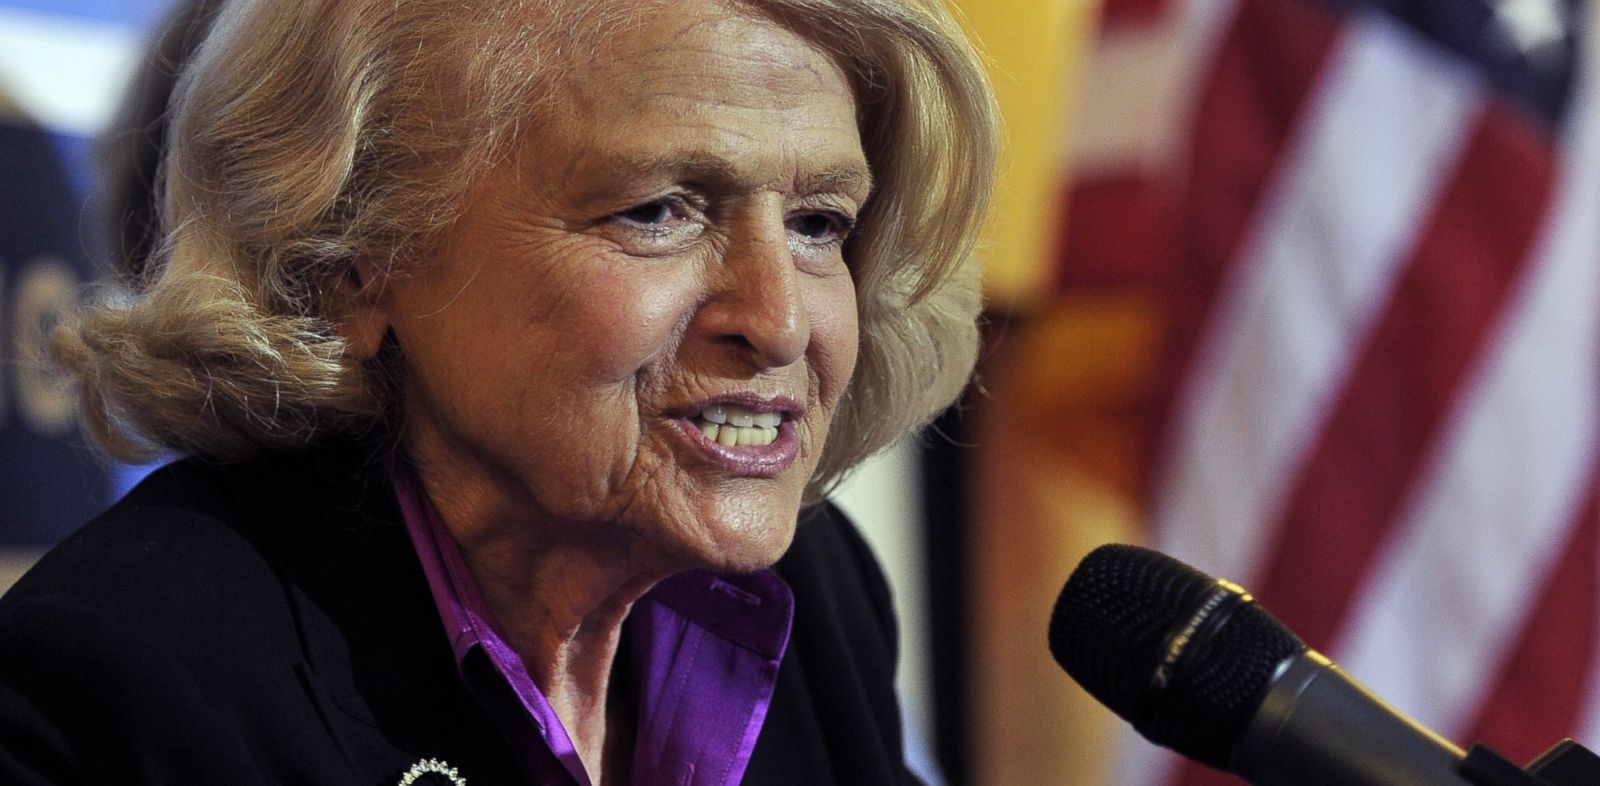 PHOTO: Defense of Marriage Act plantiff Edith Windsor speaks at a press conference at the The Lesbian, Gay, Bisexual and Transgender Community Center in New York on June 26, 2013.